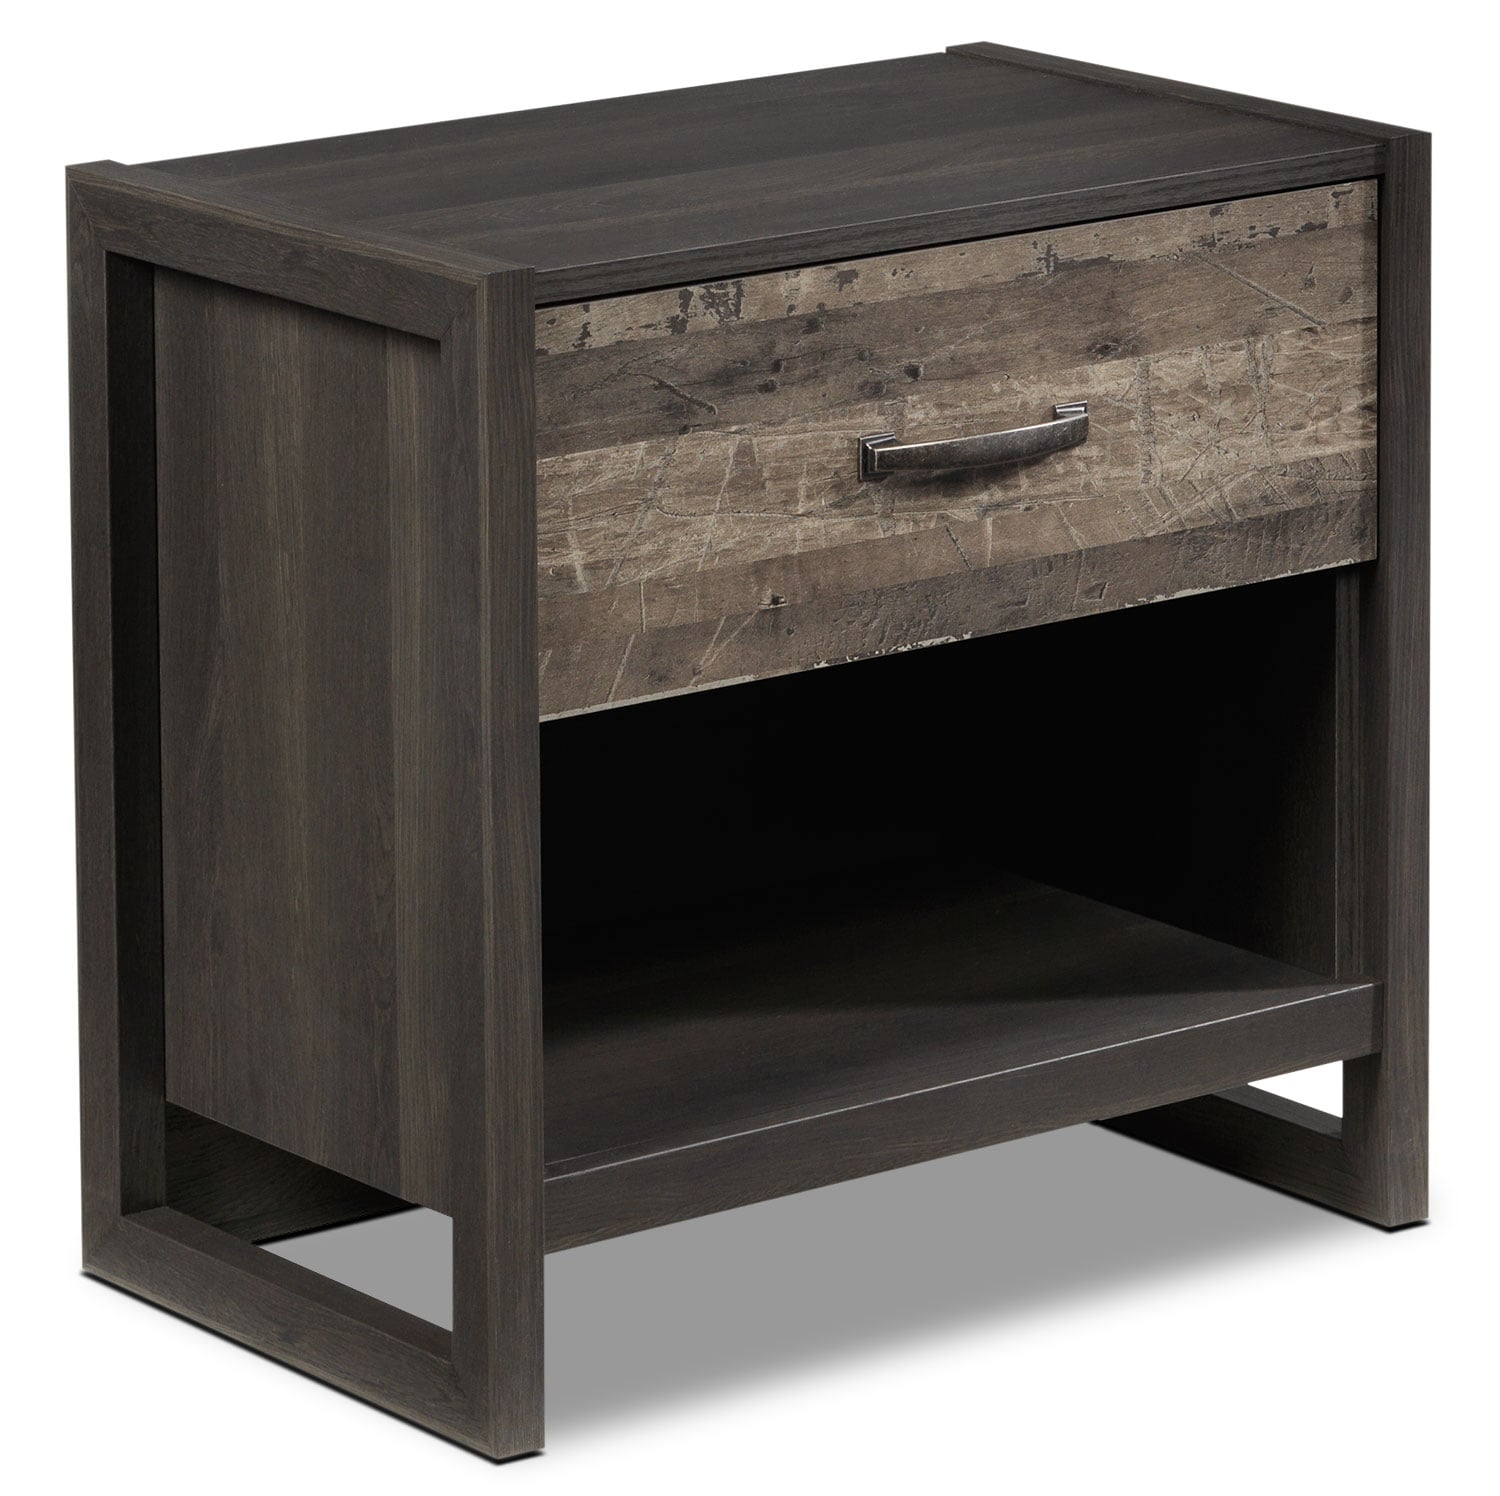 Bedroom Furniture - Hudson Night Table - Rustic Brown